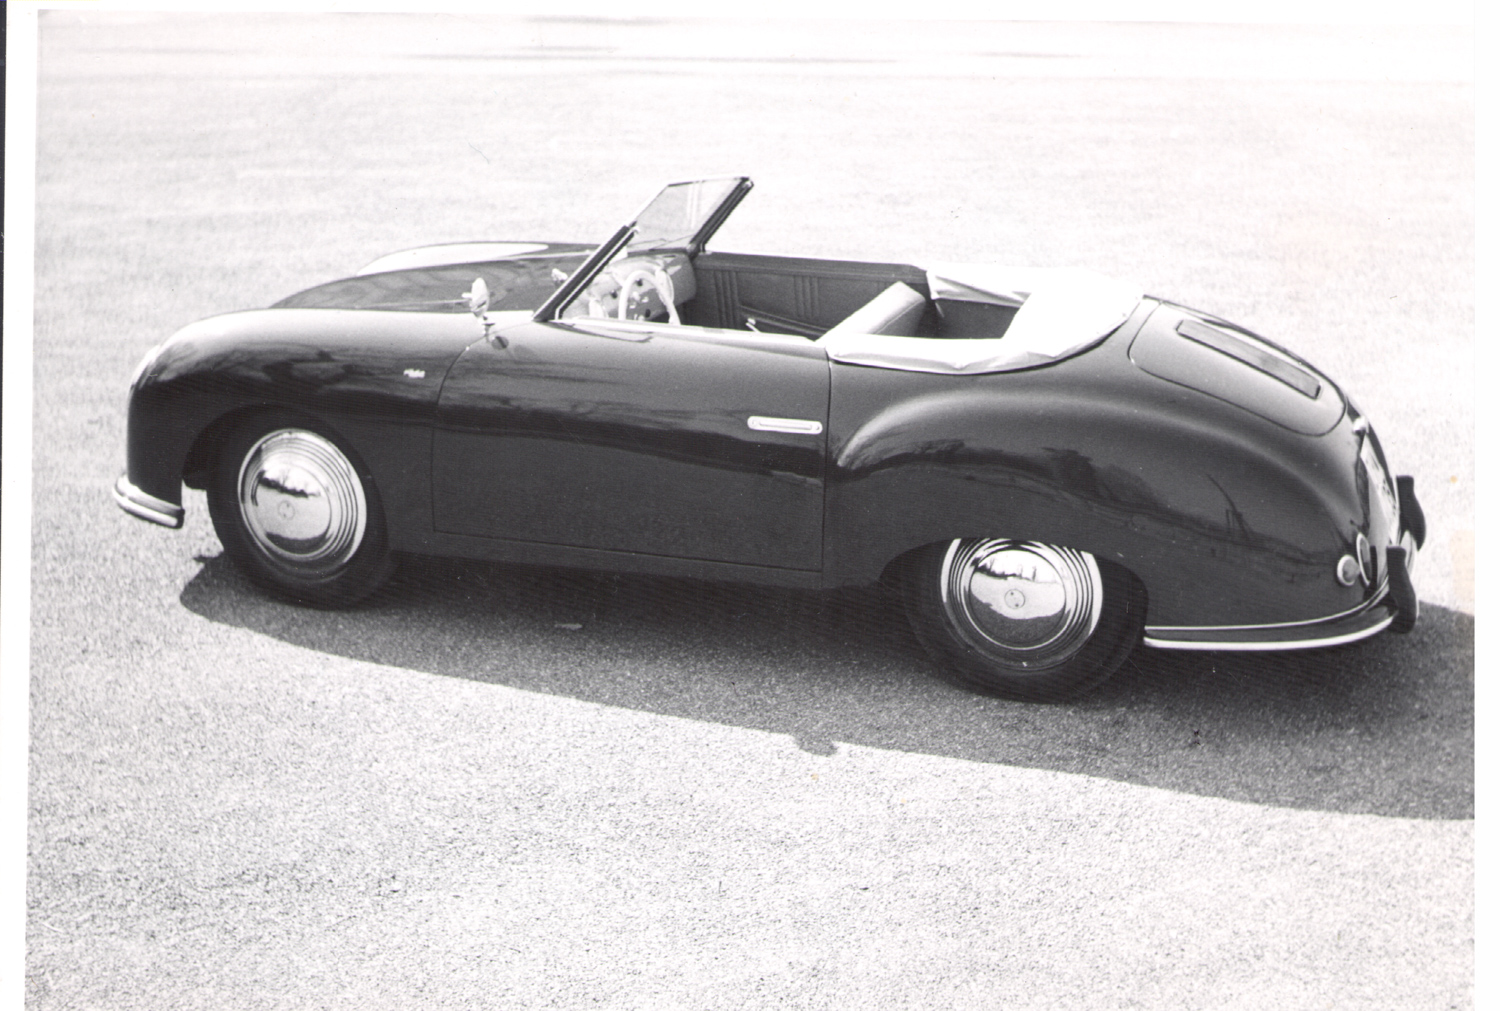 The 365/02 002 Beutler convertible (formerly owned by Jolantha Tschudi, the first person to purchase a Porsche)